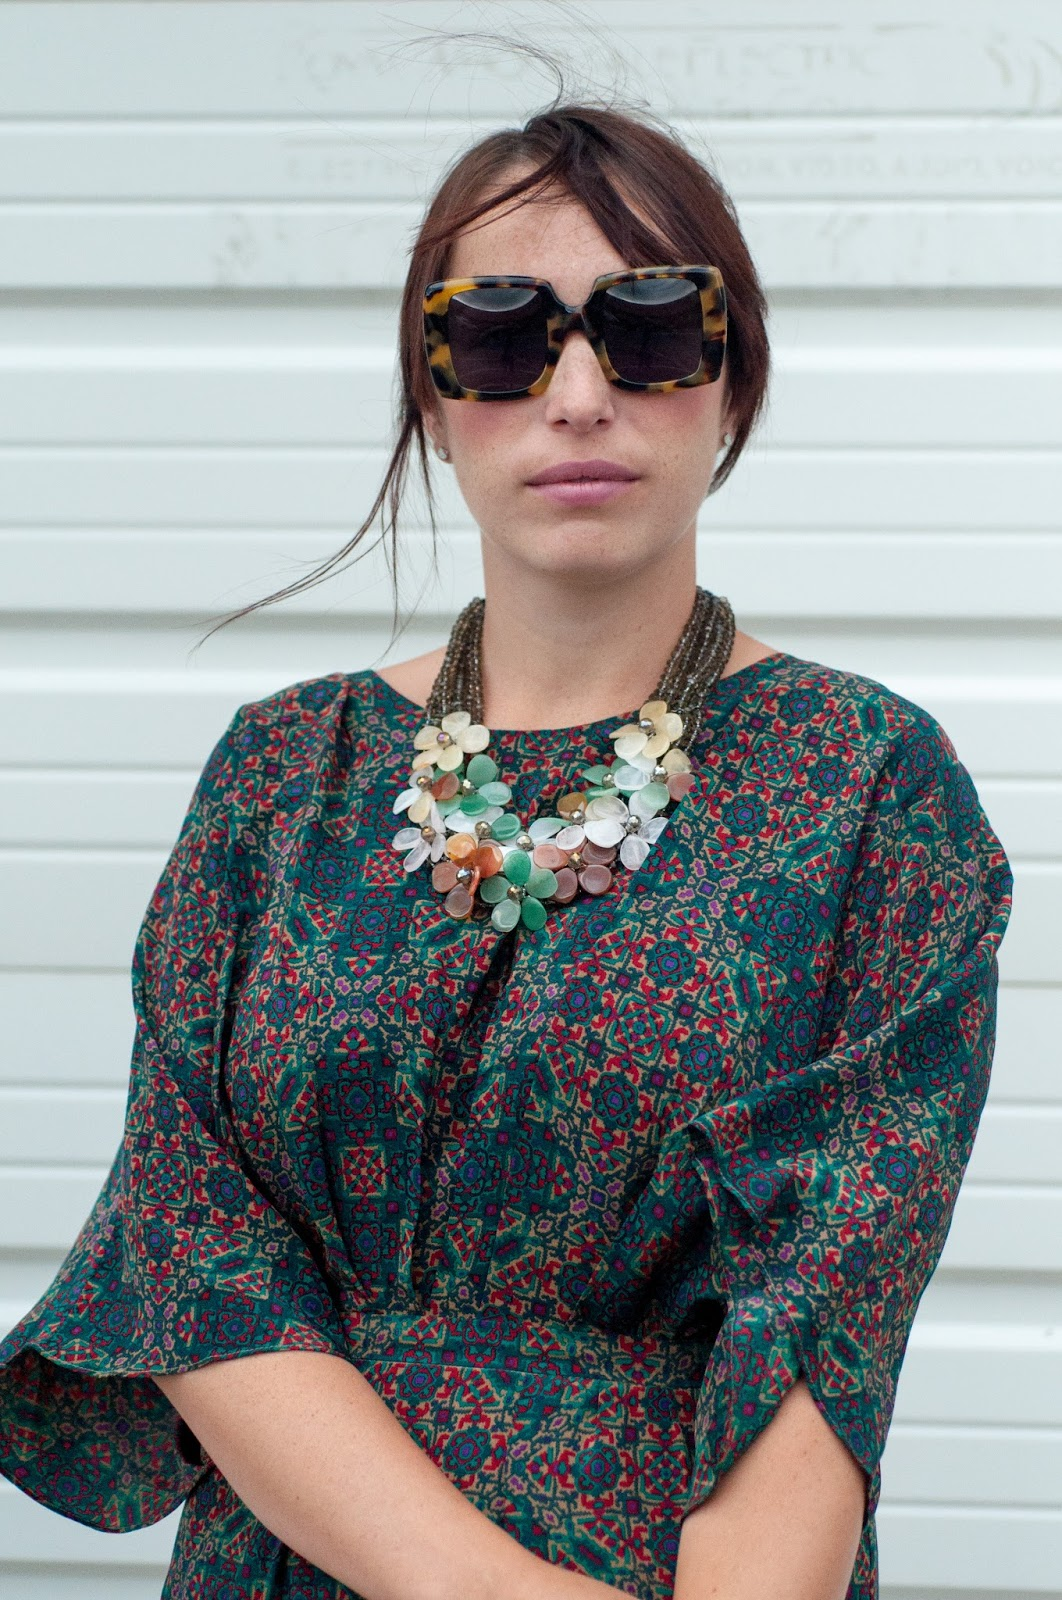 anthropologie dress, anthropologie ootd, ootd, what i wore, floral necklace, karen walker betsy sunglasses, karen walker